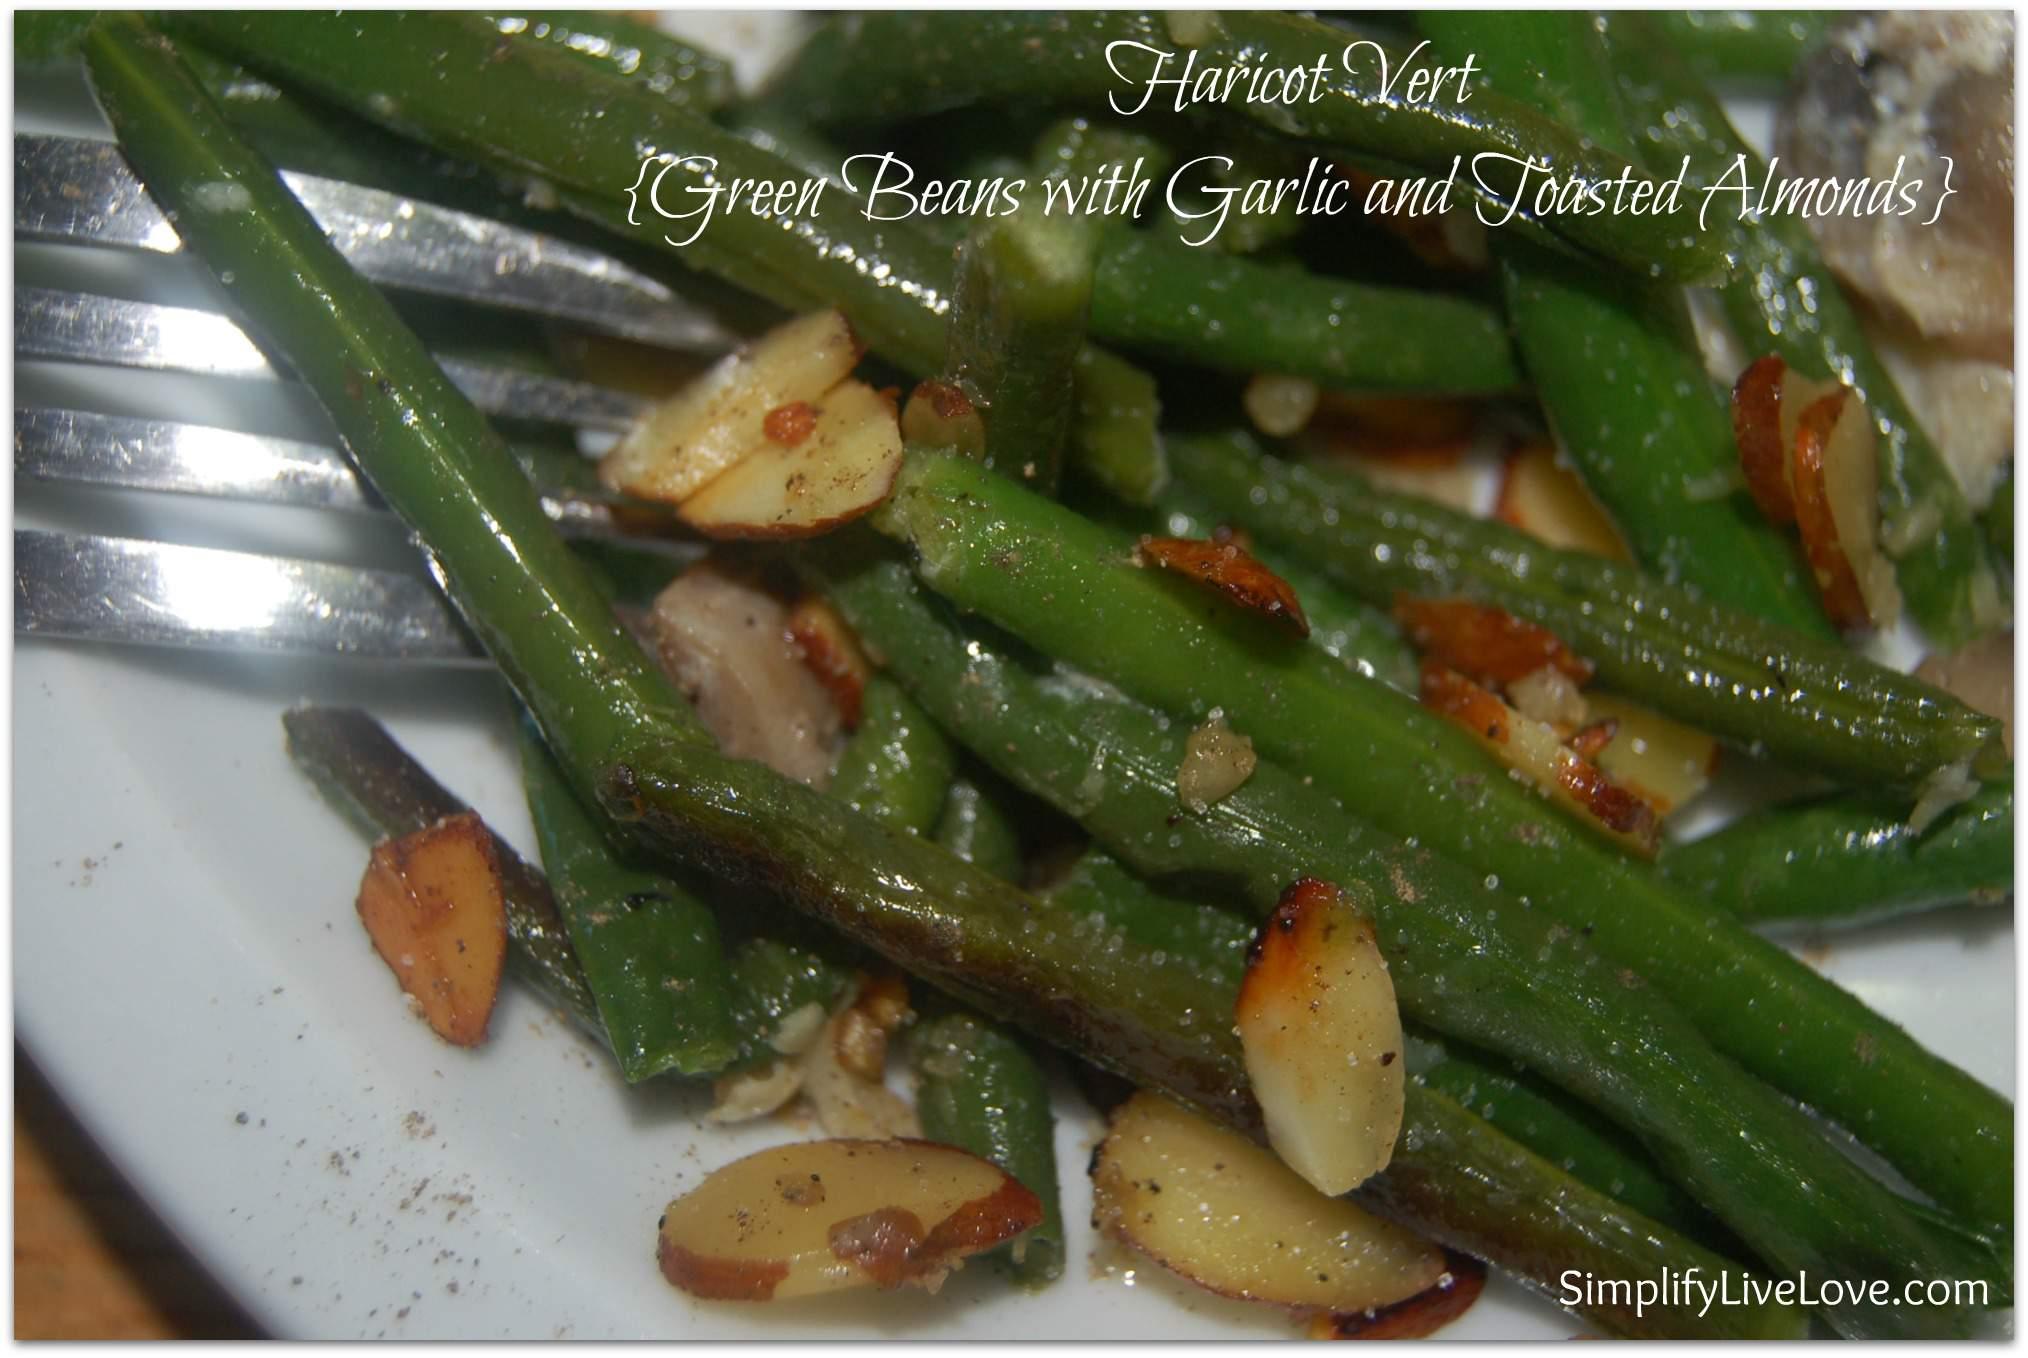 haricot vert - green beans with garlic & toasted almonds